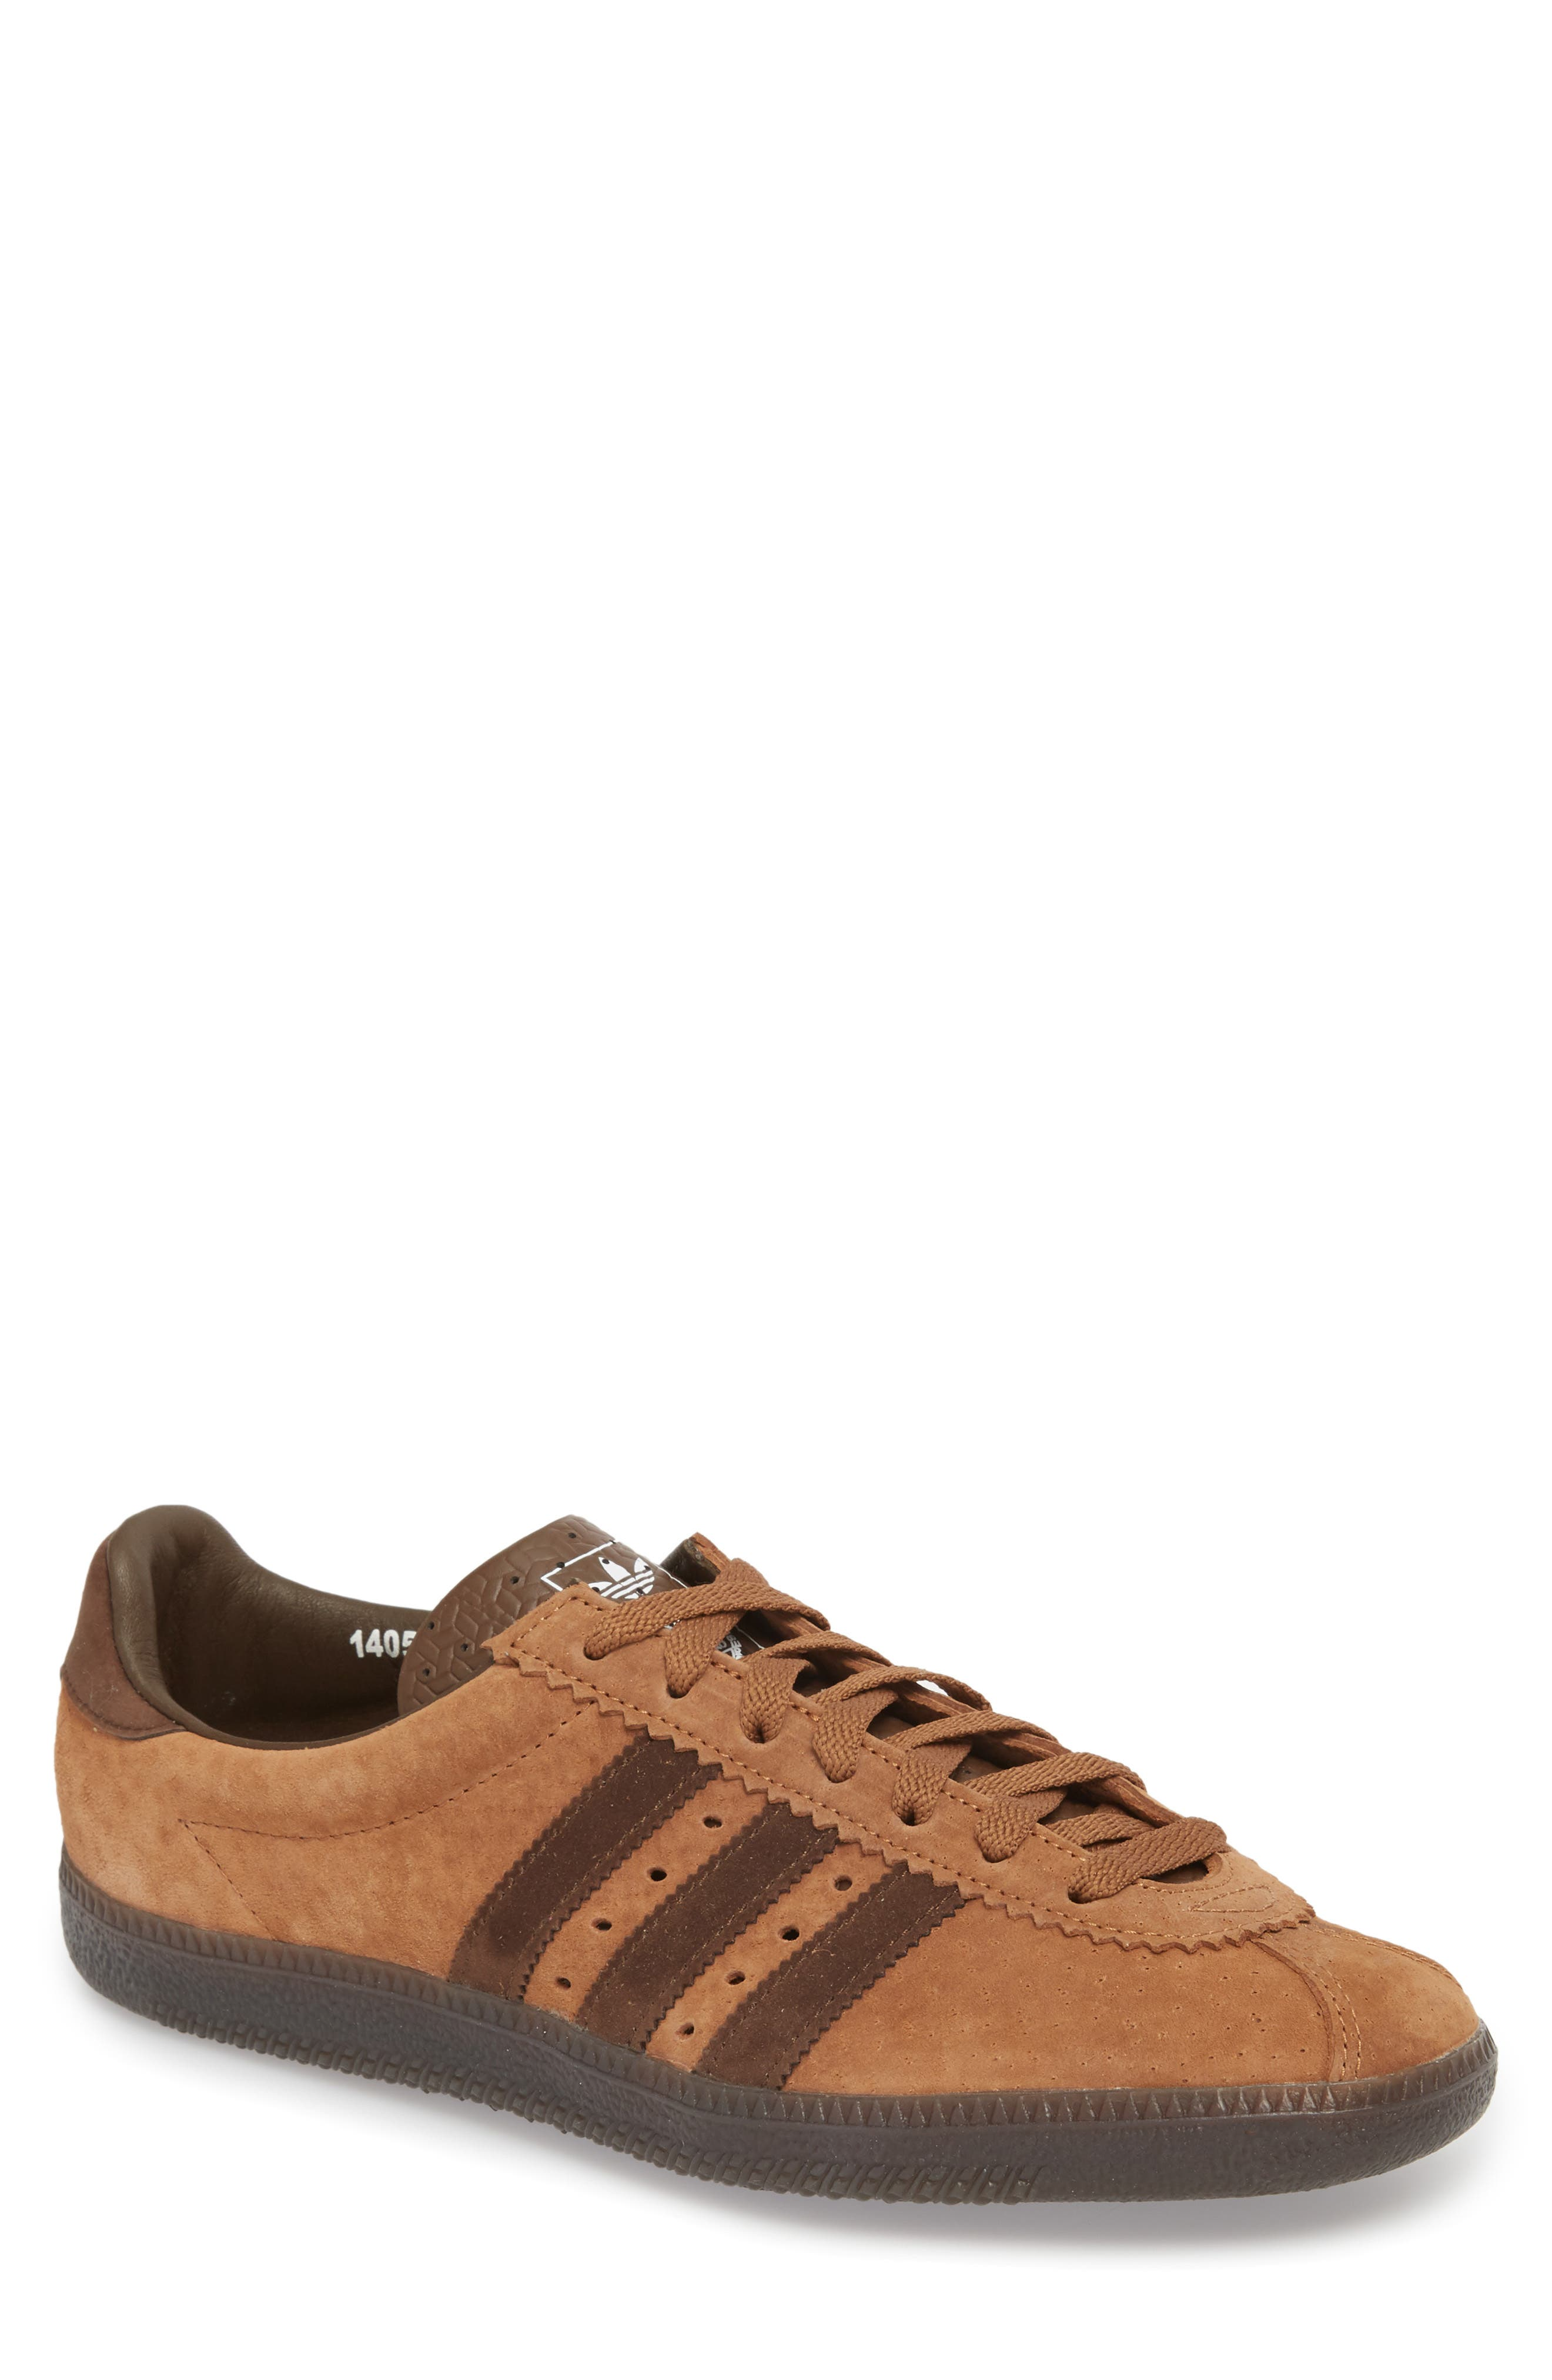 Padiham SPZL Sneaker,                             Main thumbnail 1, color,                             Brown